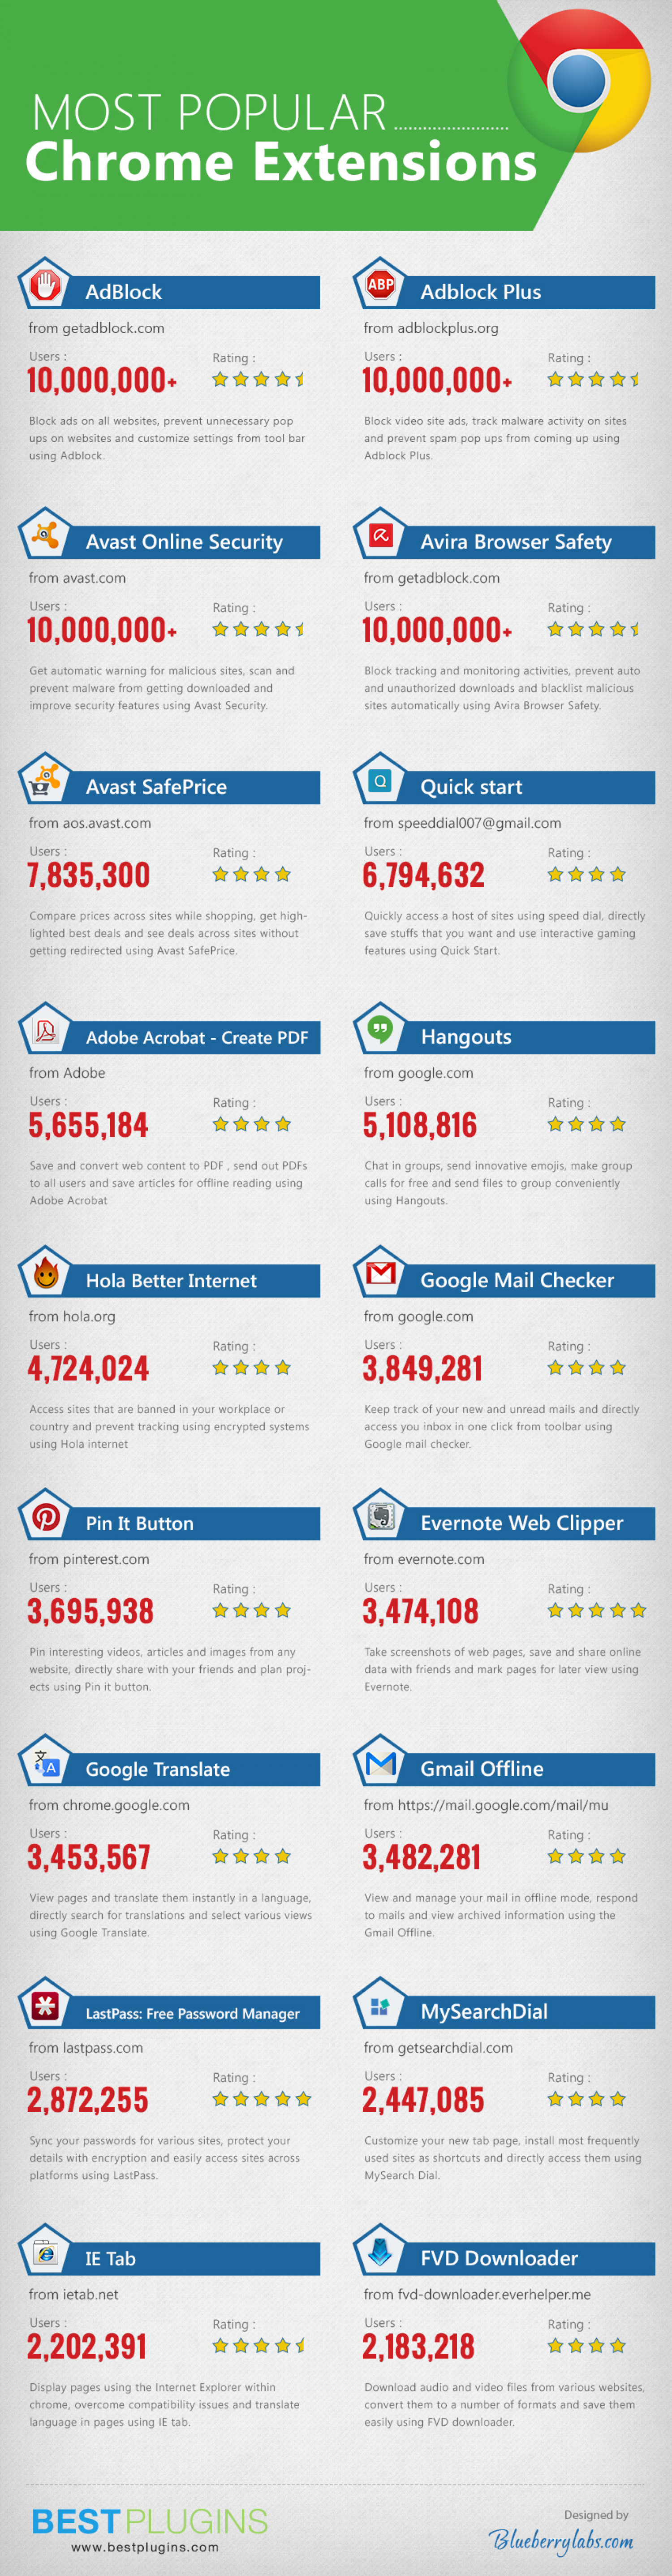 Google Chrome Extensions Infographic